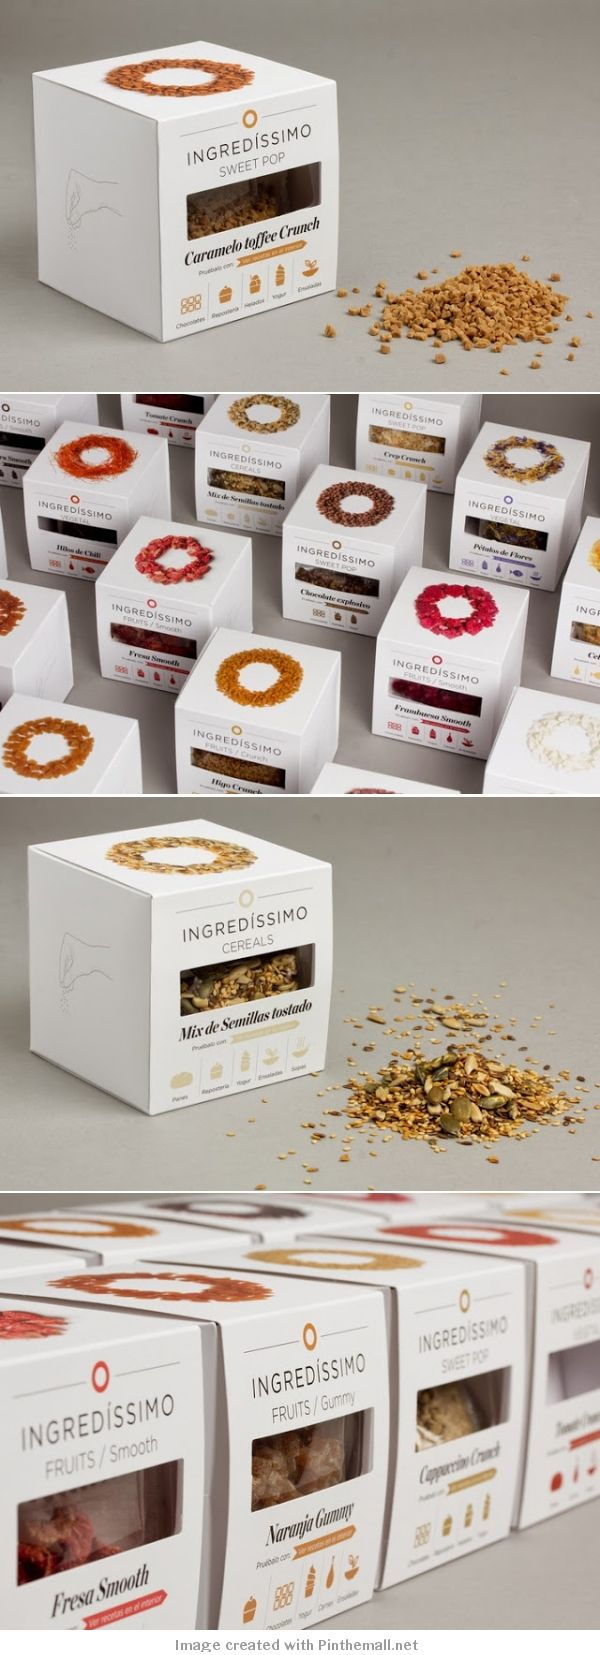 INGREDISSIMO   by Lo Siento, Spain.